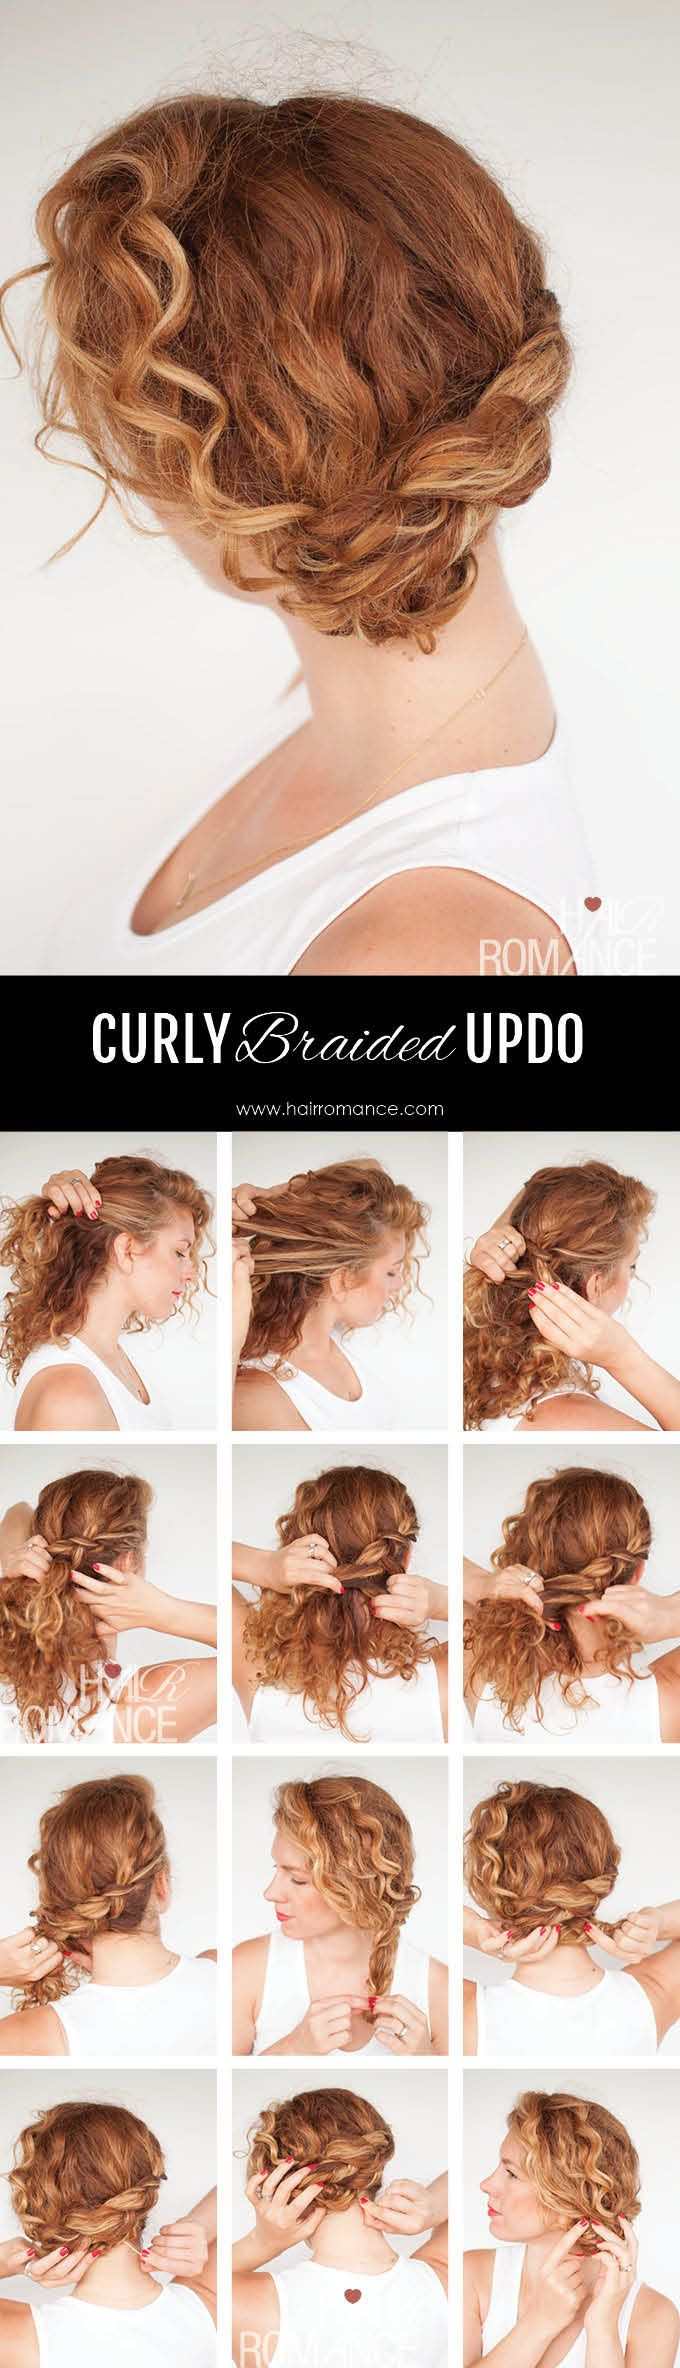 New Curly Hairstyle Tutorial Tips For Braiding Curly Hair Hair Romance Curly Hair Styles Curly Hair Tutorial Curly Hair Styles Naturally